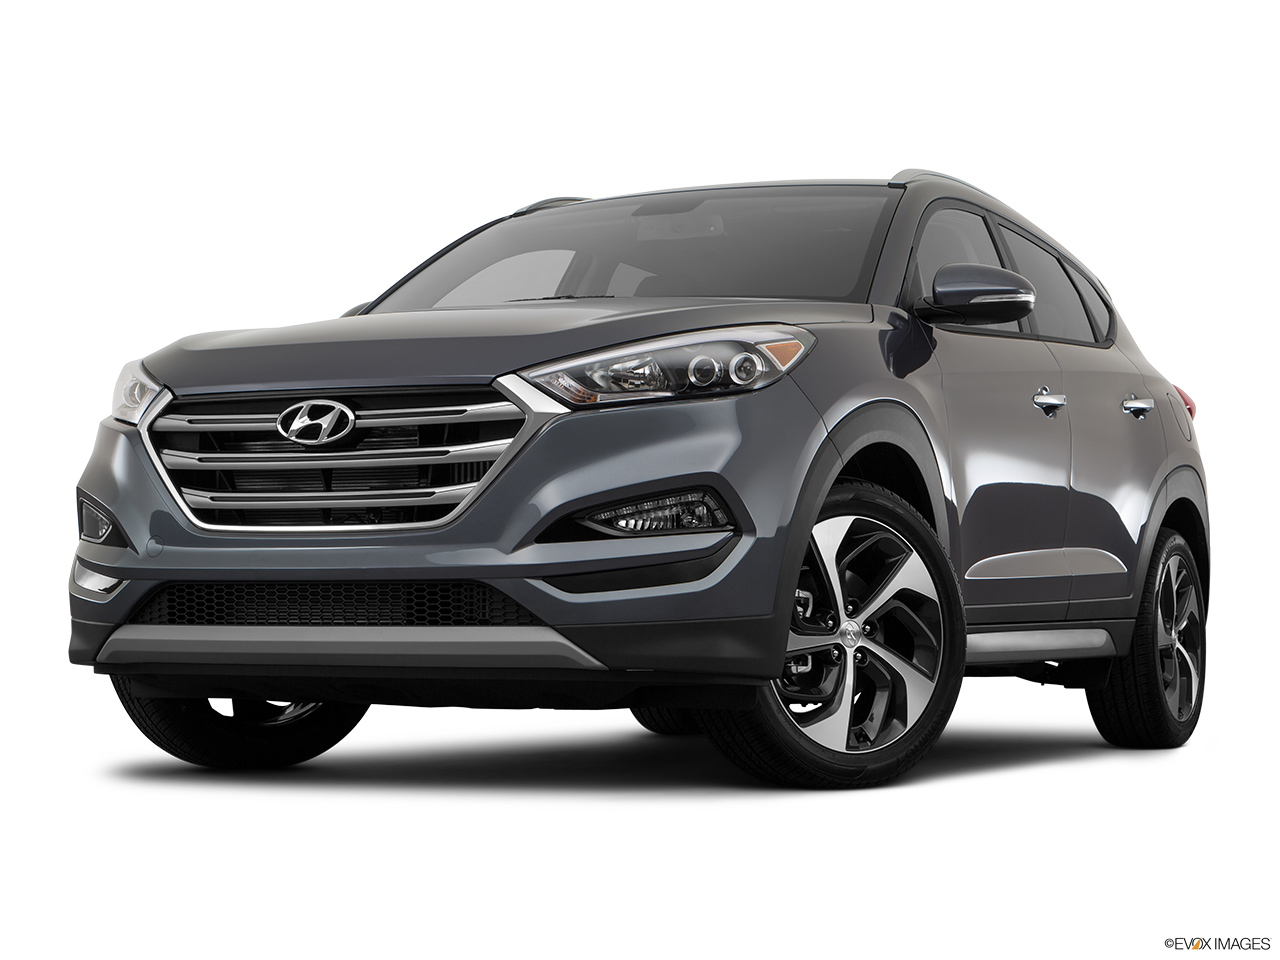 2018 hyundai tucson prices in uae gulf specs reviews for dubai abu dhabi and sharjah. Black Bedroom Furniture Sets. Home Design Ideas